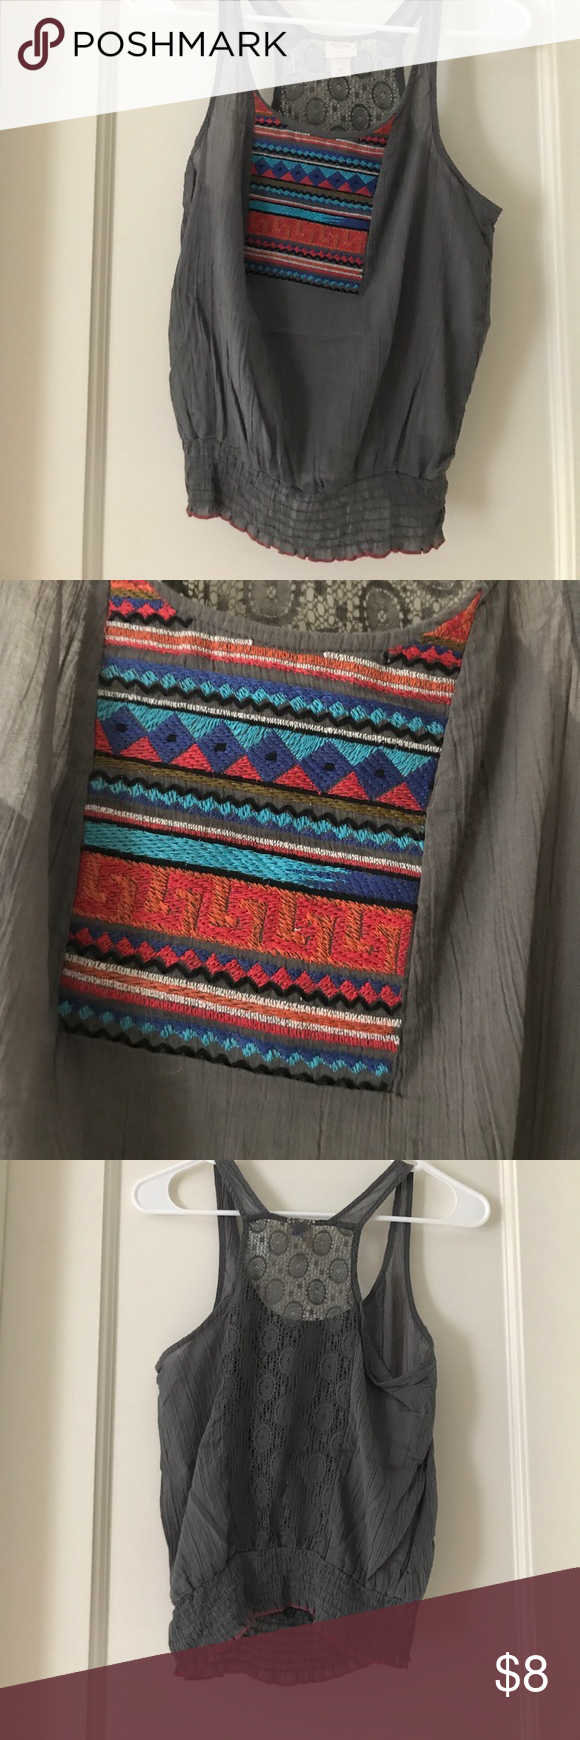 16af36faf8b5f Aztec embroidery on front. Tighter on the bottom. Cute aztec embroidery on  the front. Lace detailing on the back  Mossimo Supply Co Tops Blouses